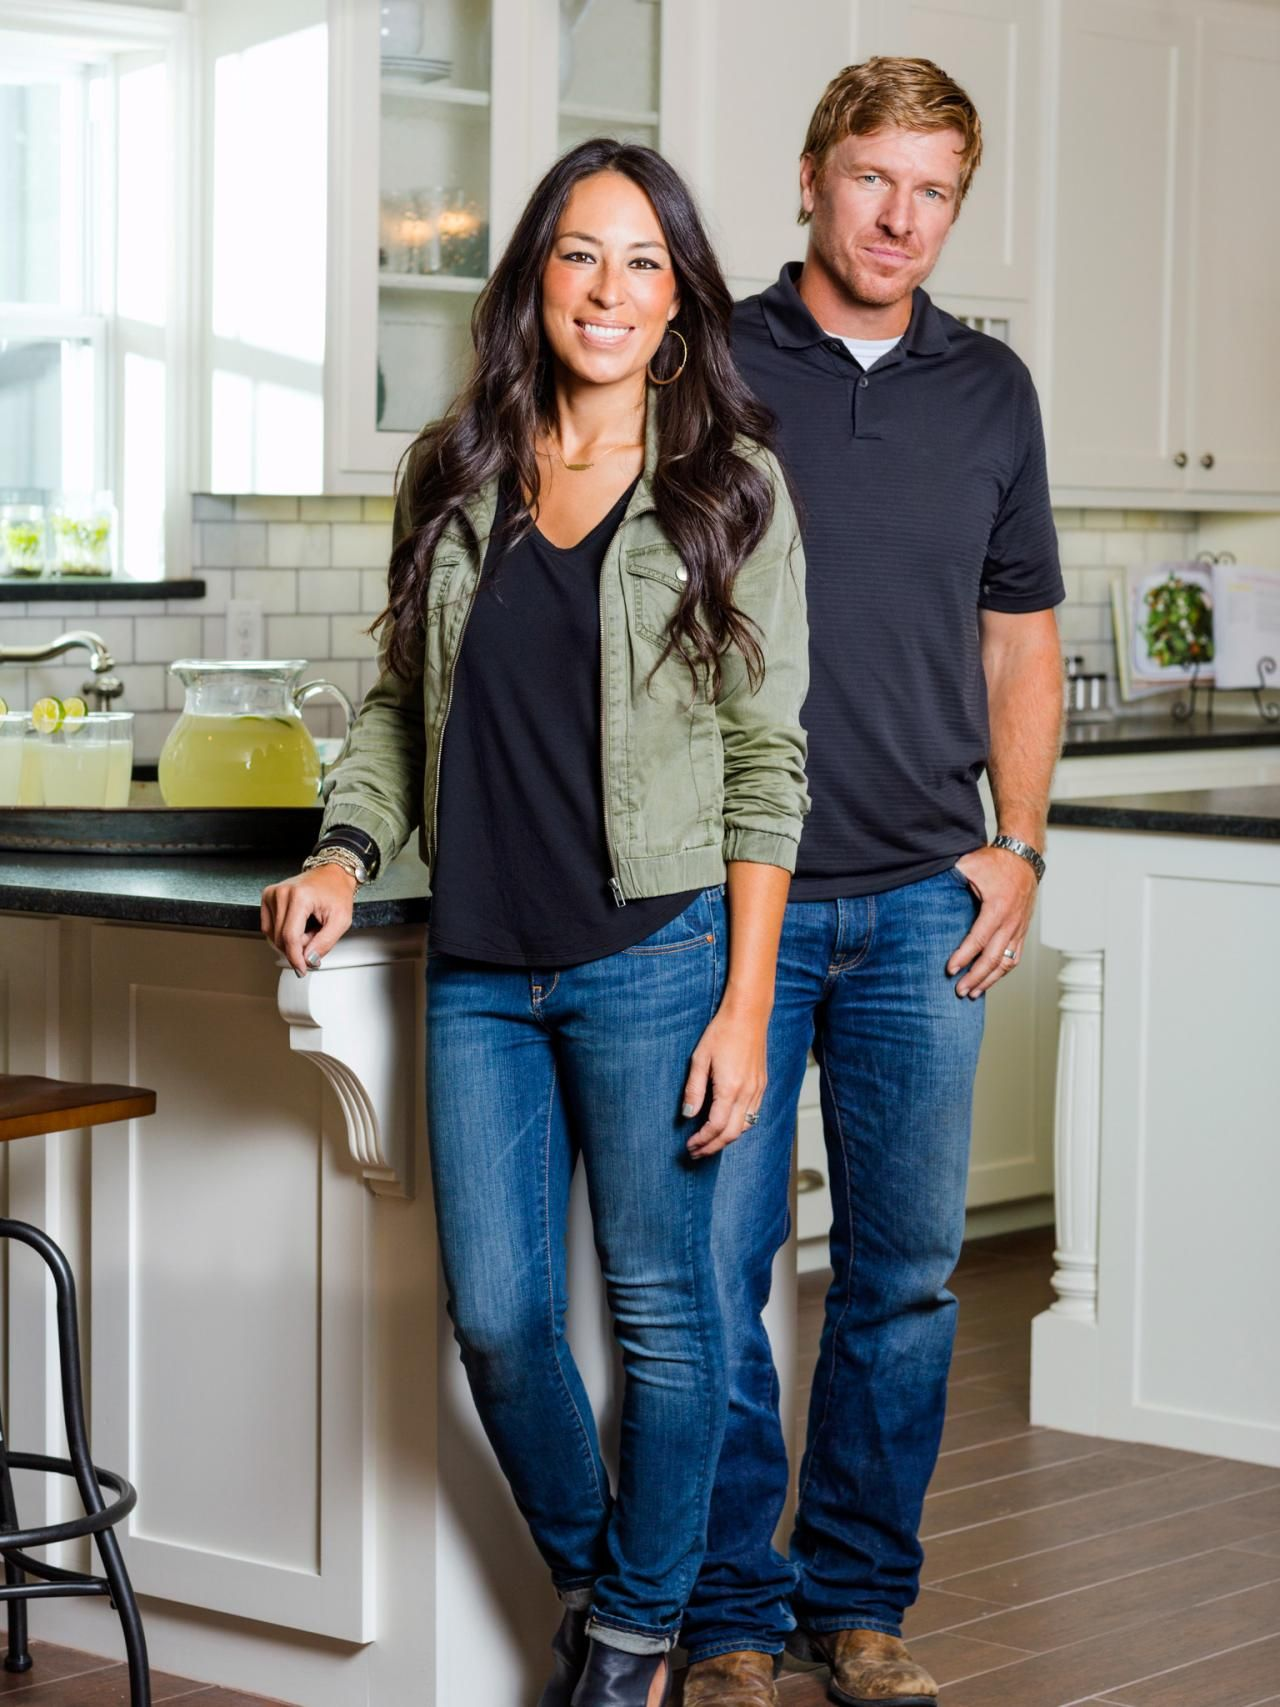 Fixer Upper Joanna Gaines Best Outfits Joanna Gaines Style Clothes Joanna Gaines Clothes Joanna Gaines Style